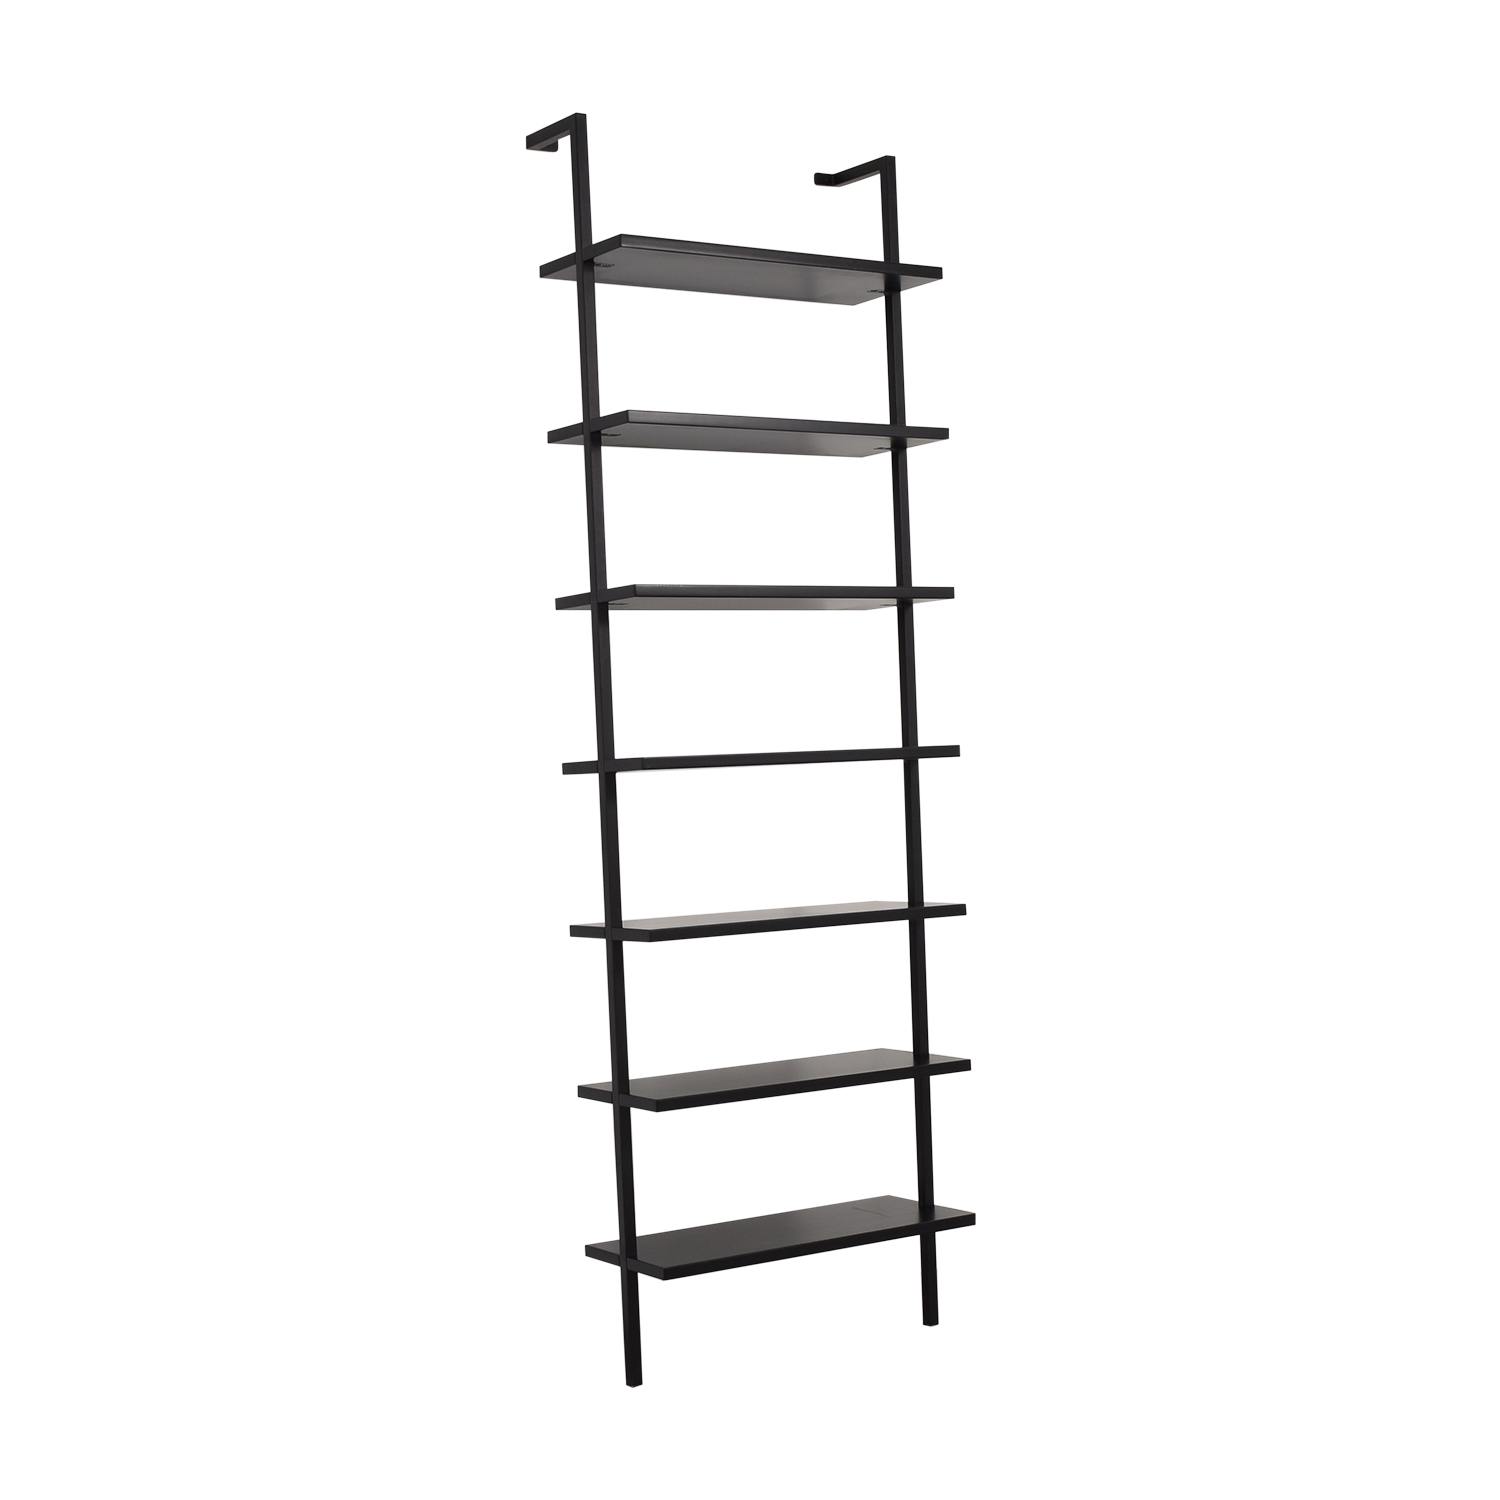 CB2 CB2 Stairway Wall Mounted Bookcase ct